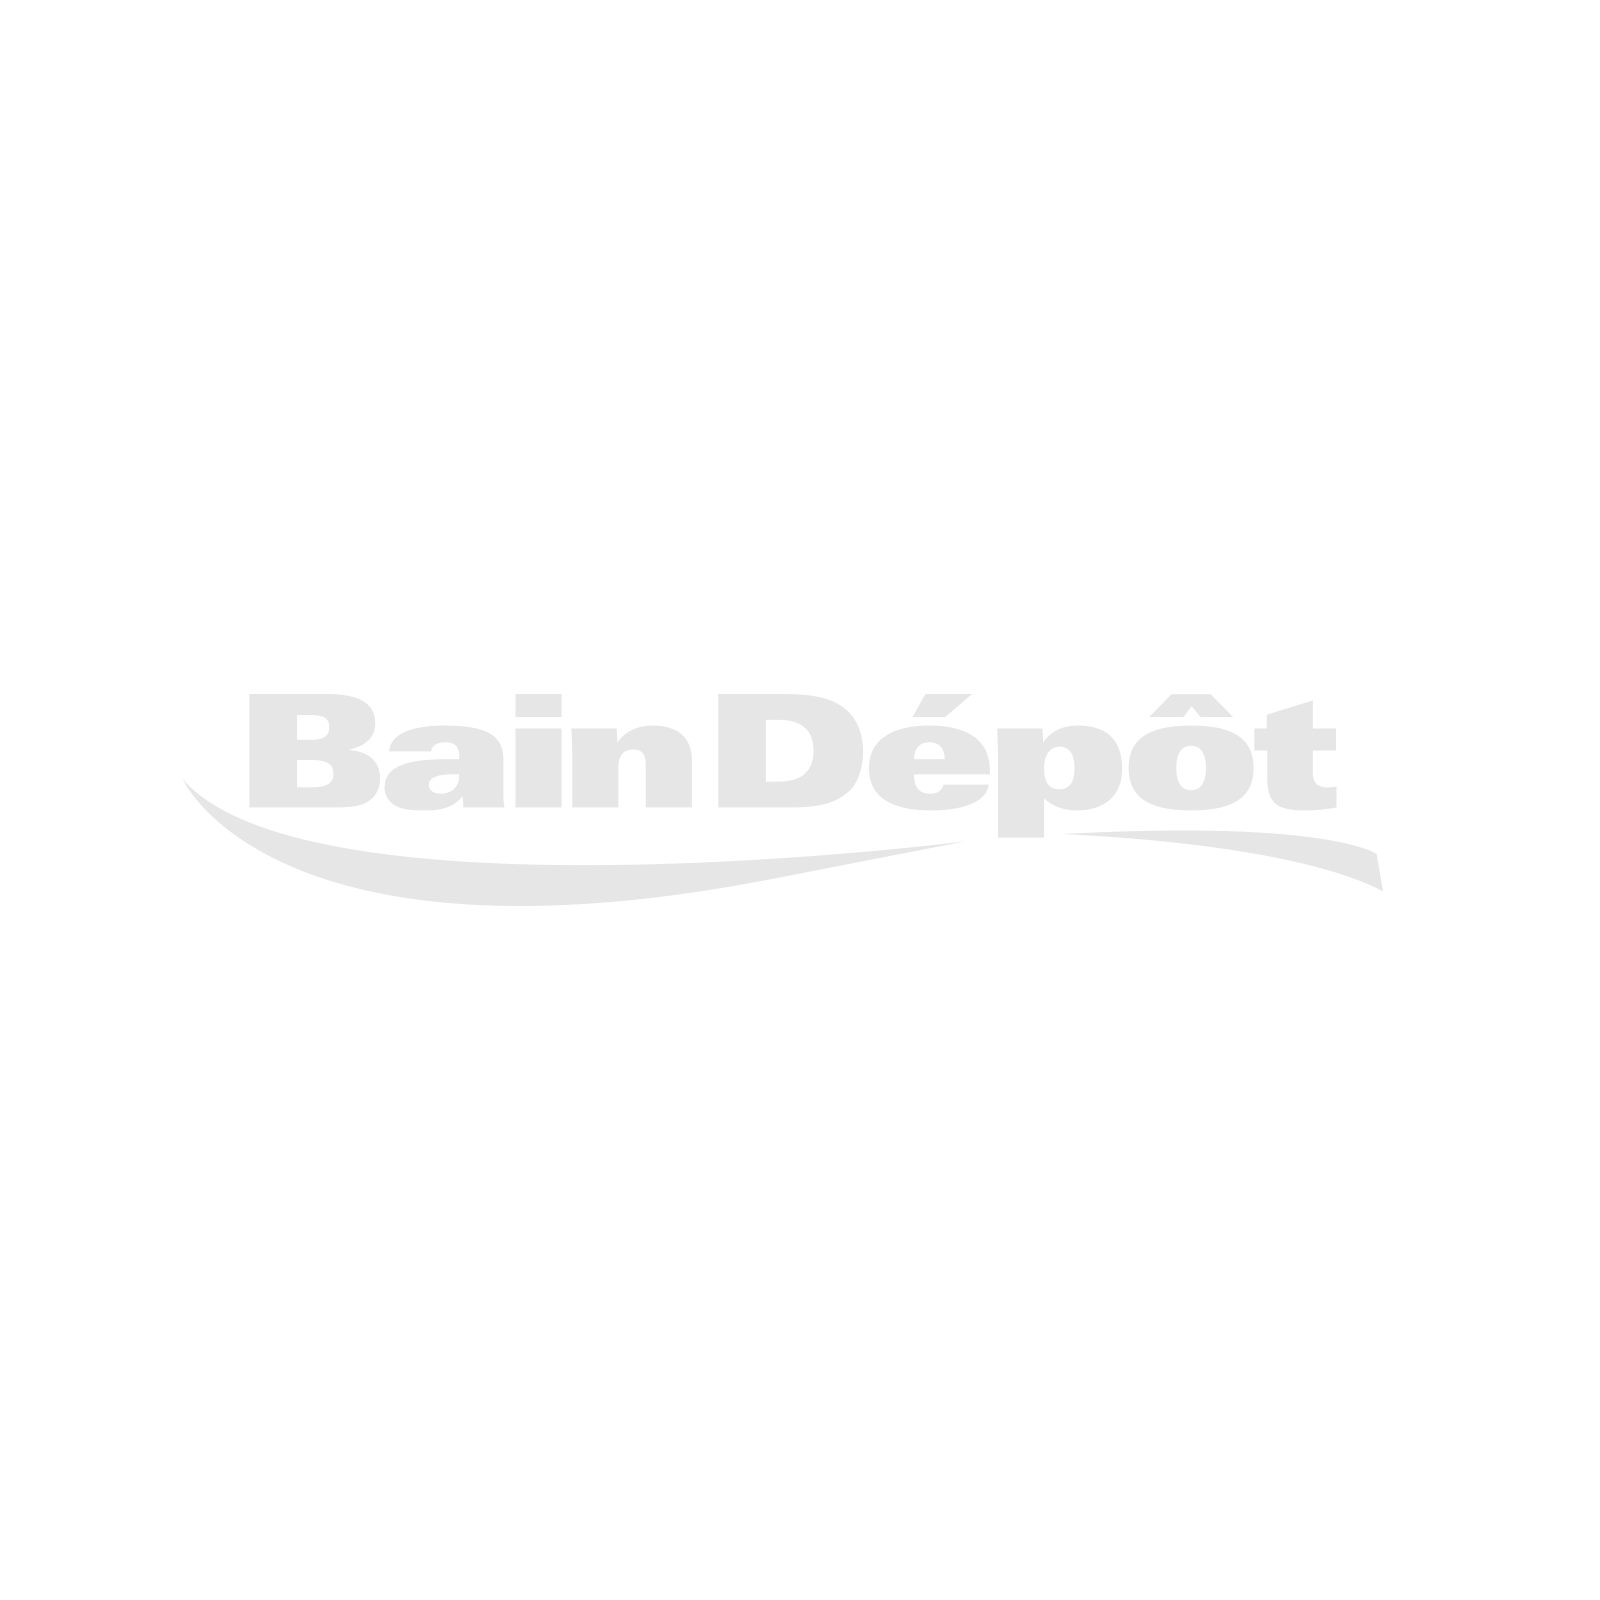 WARMUP- MAT for instalation within the adhesive layer under tiles or leveling compound convering 40 square feet